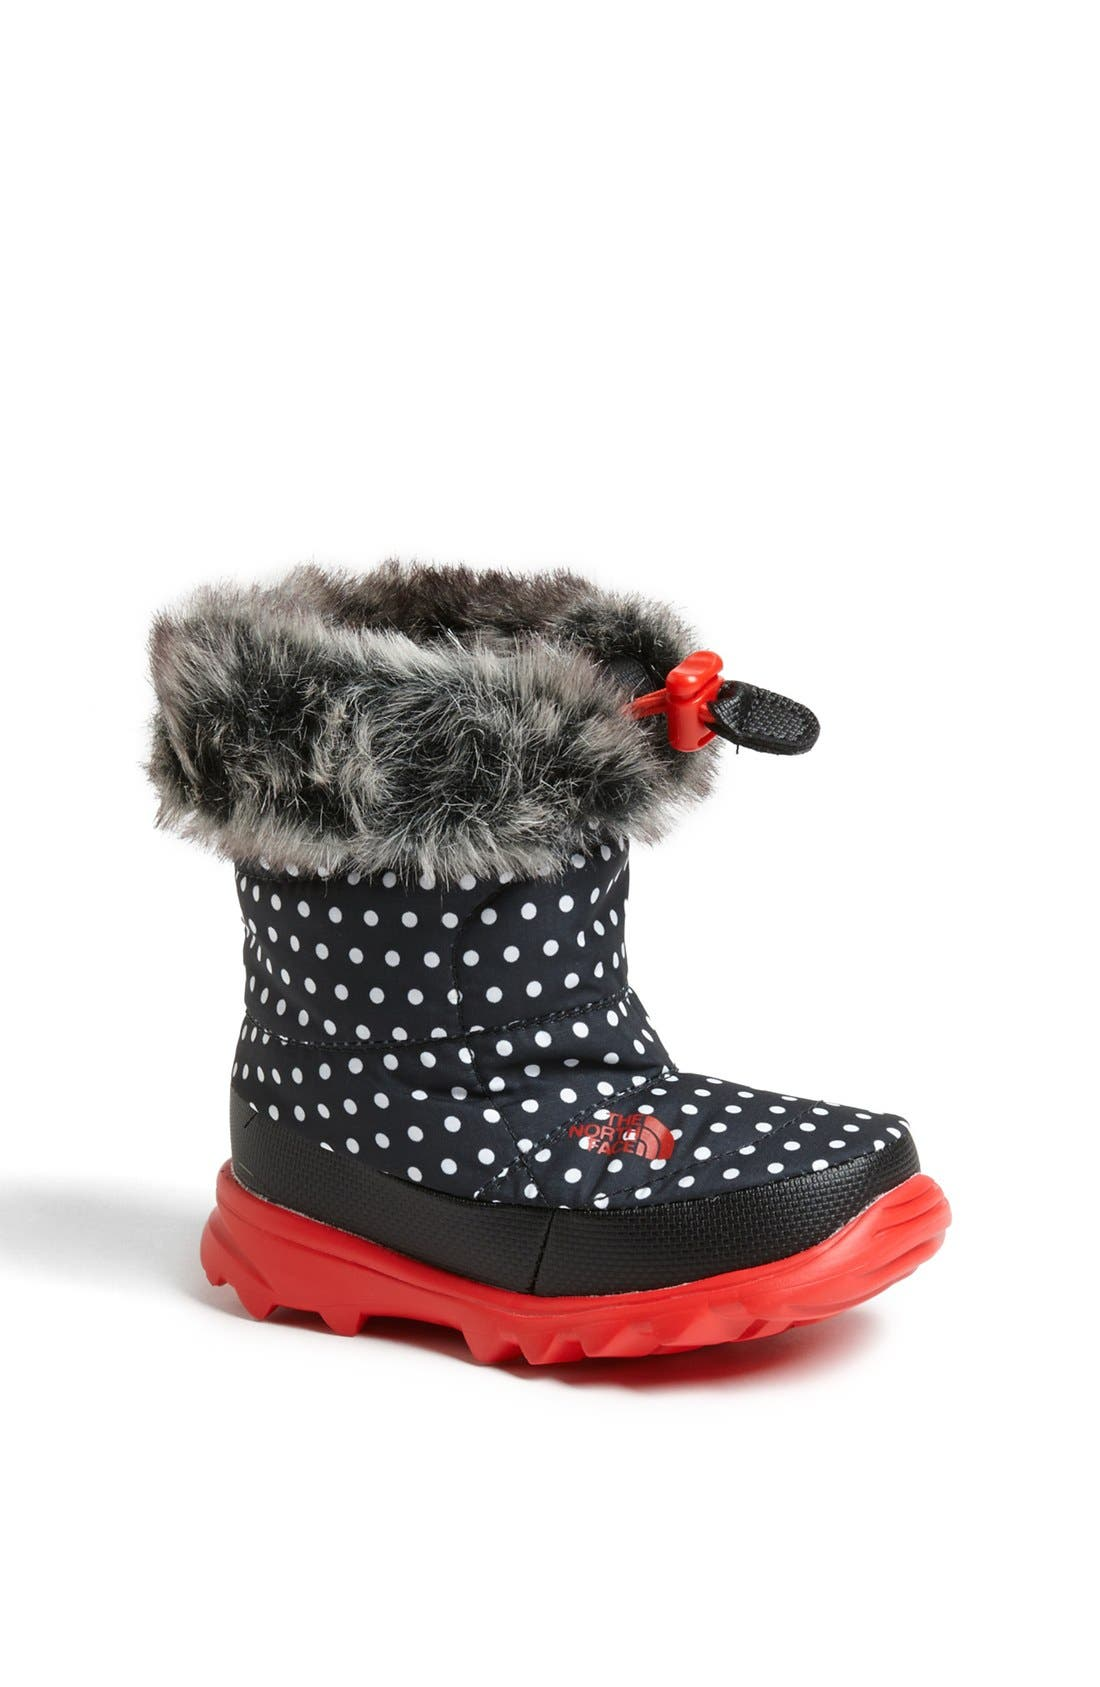 Alternate Image 1 Selected - The North Face 'Nuptse Fur II' Winter Boot (Walker & Toddler)